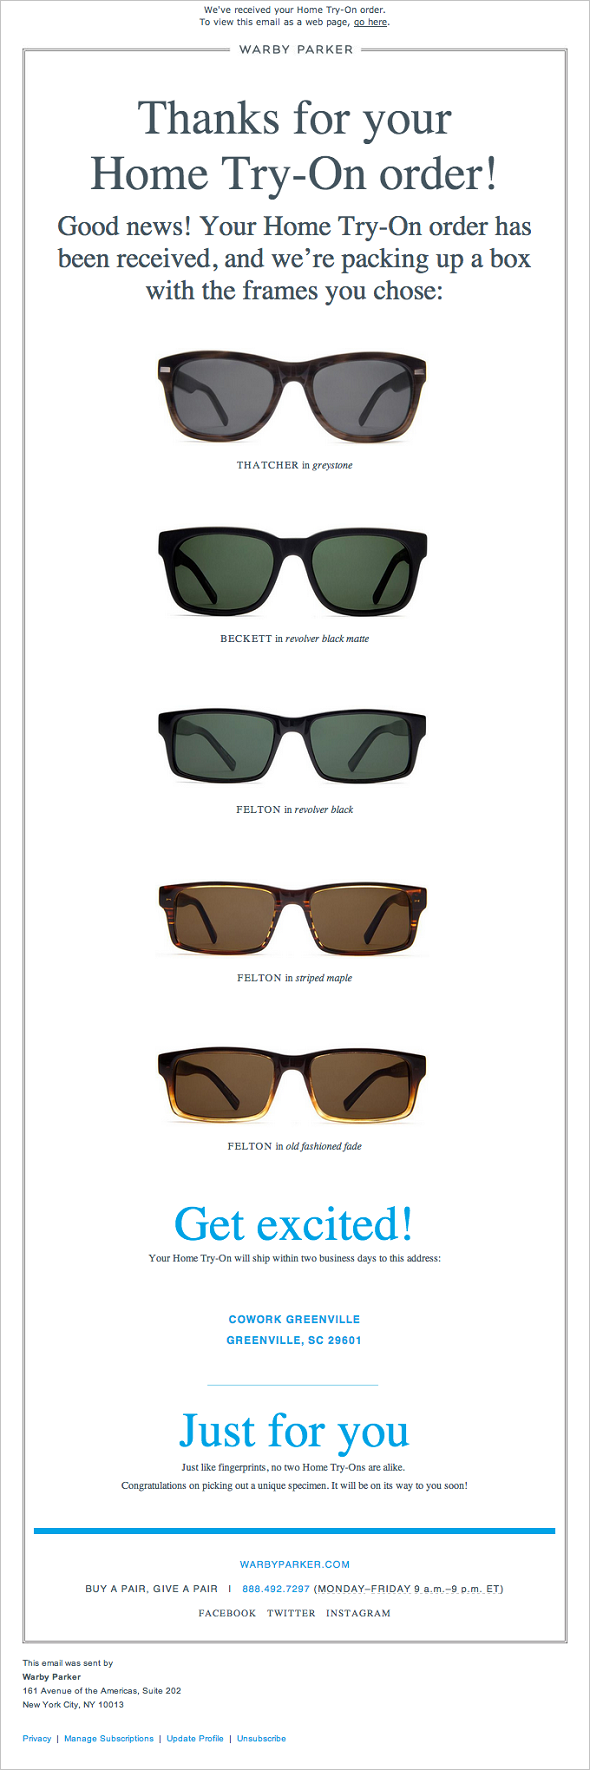 Warby Parker - Thanks for Your Order